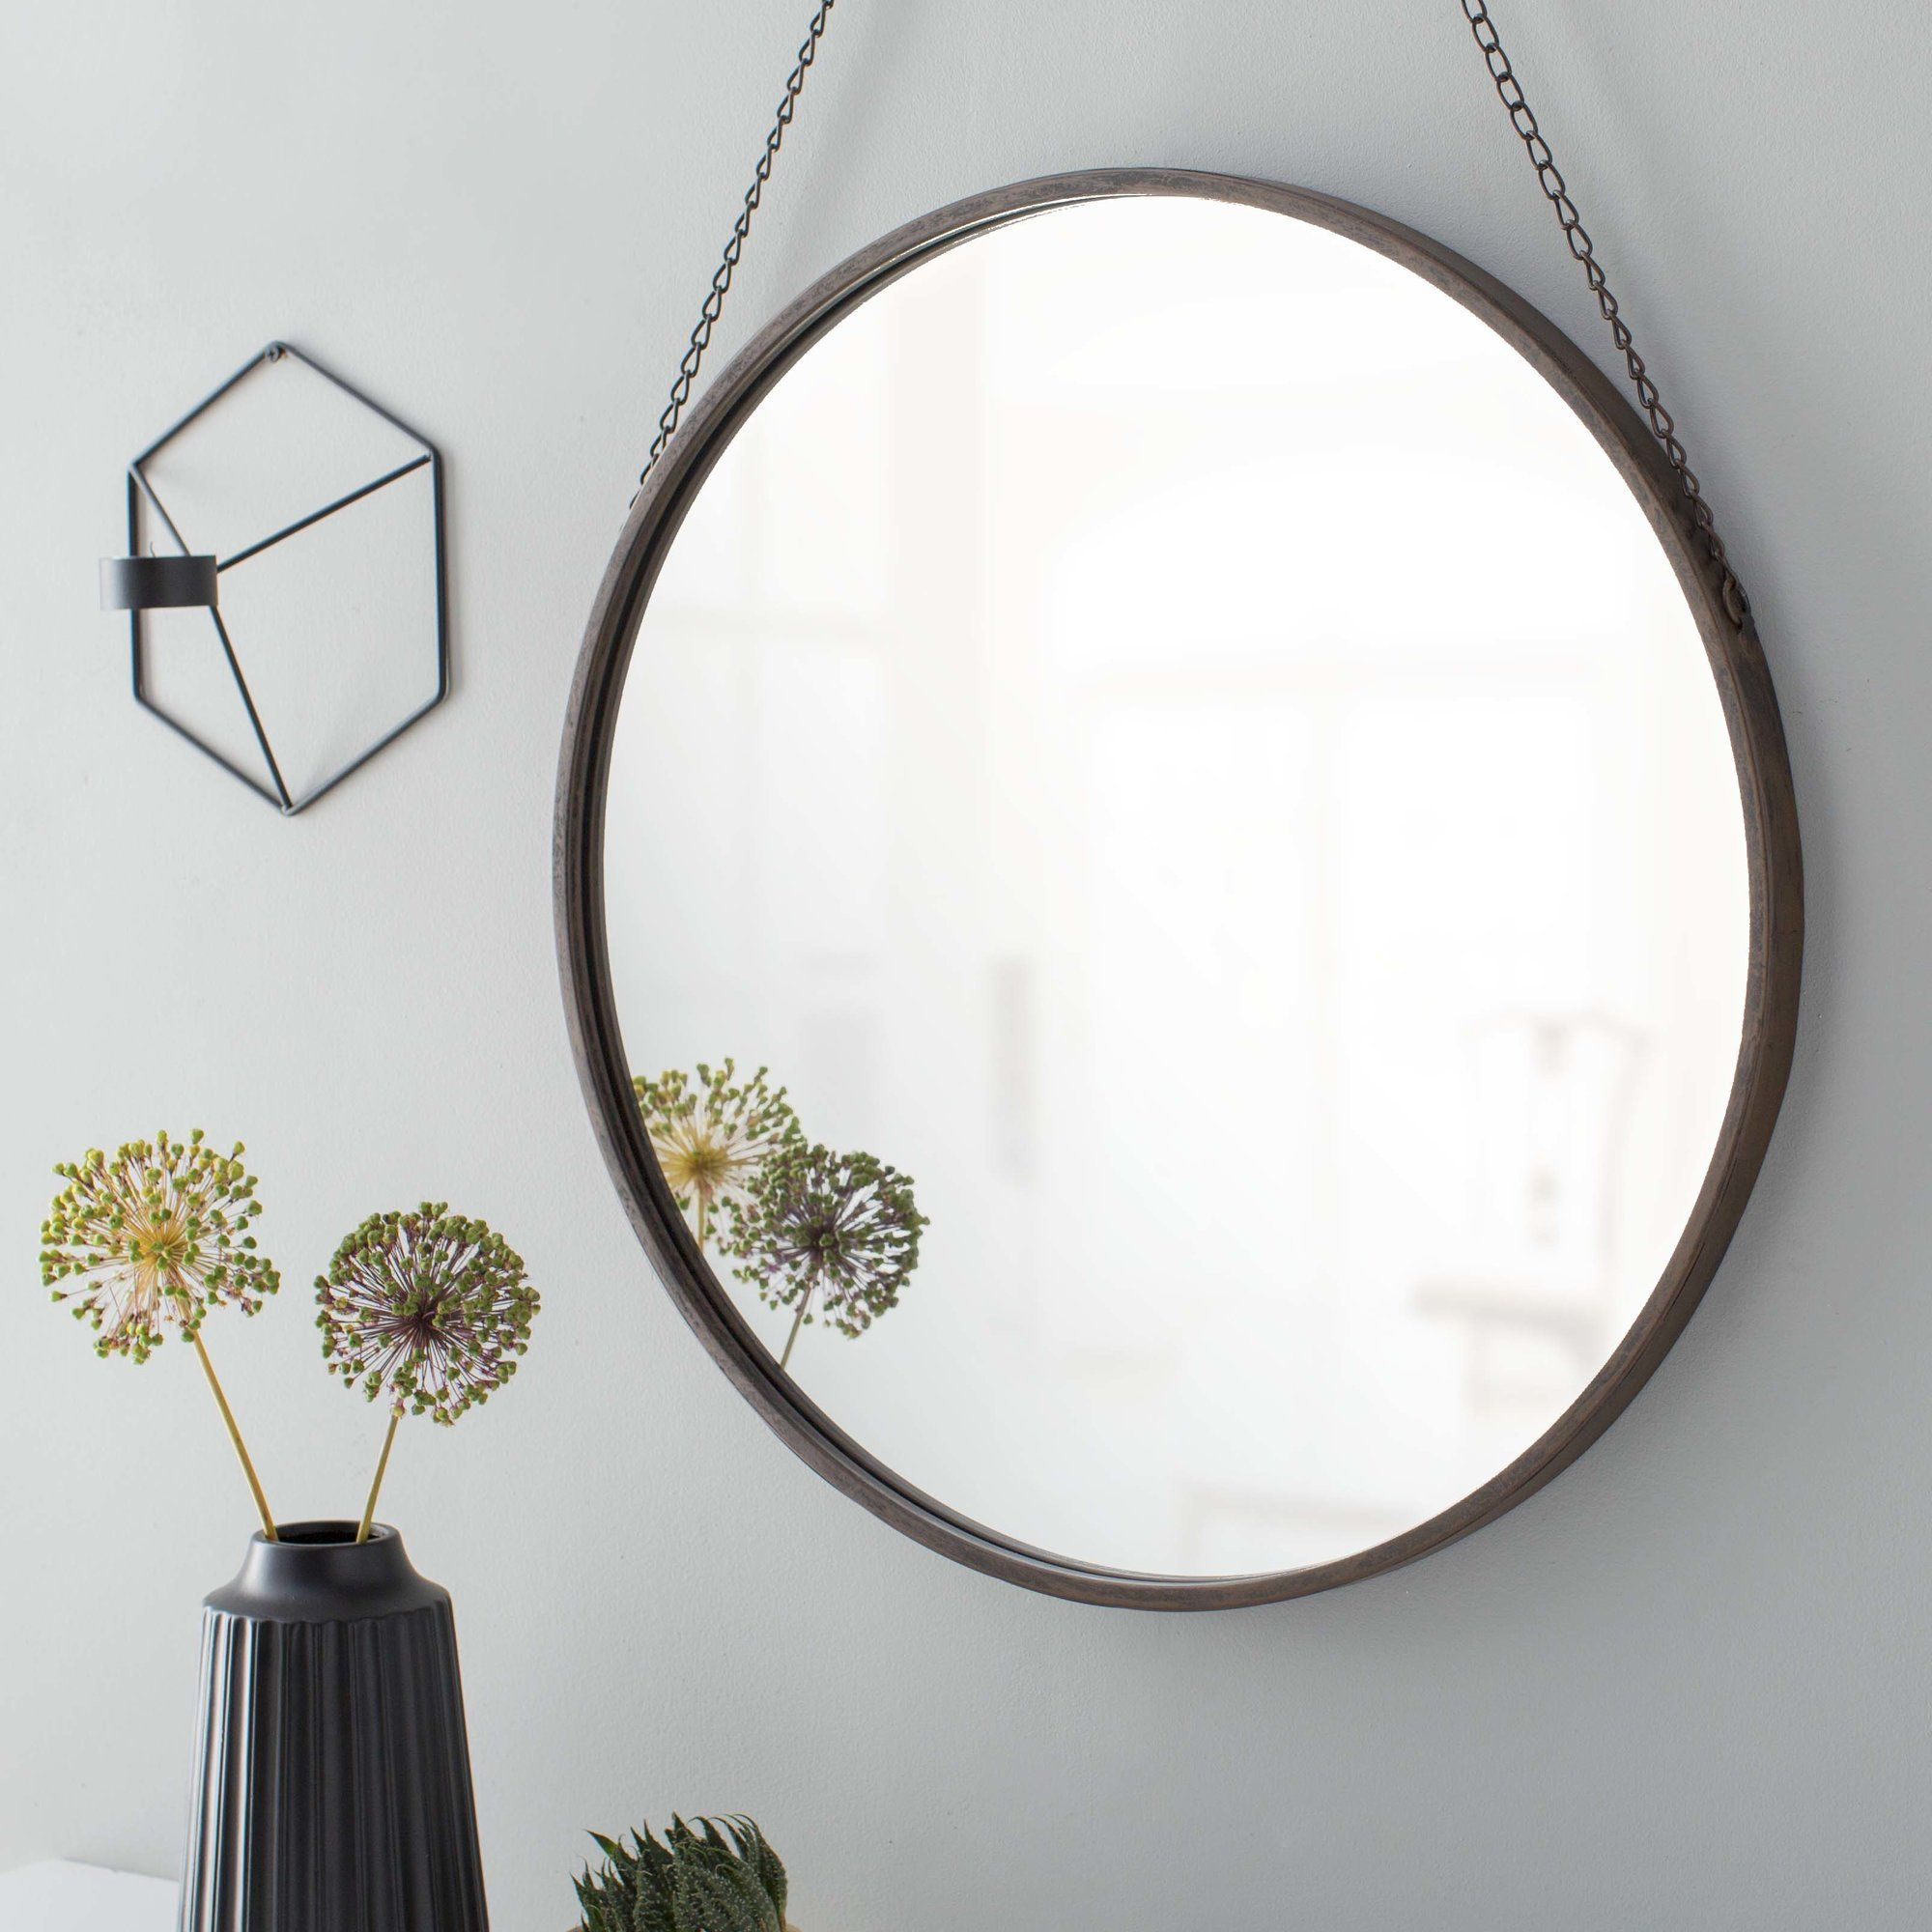 Round Metal Mirror With Black Chain Hanger | Kiddos pertaining to Yedinak Modern Distressed Accent Mirrors (Image 18 of 30)